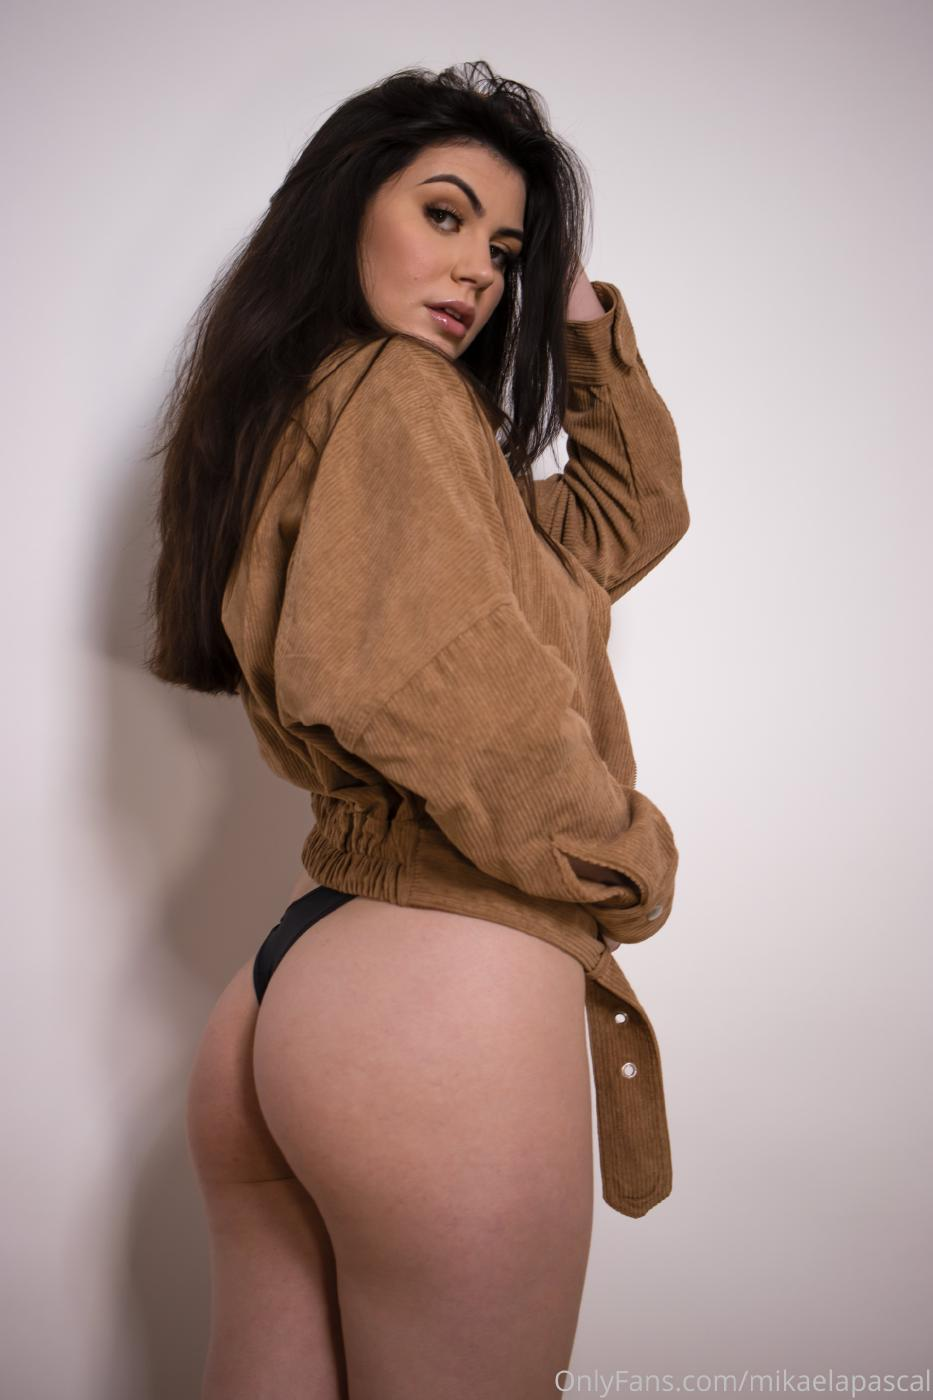 Mikaela Pascal Onlyfans March Extras Leaked 0012